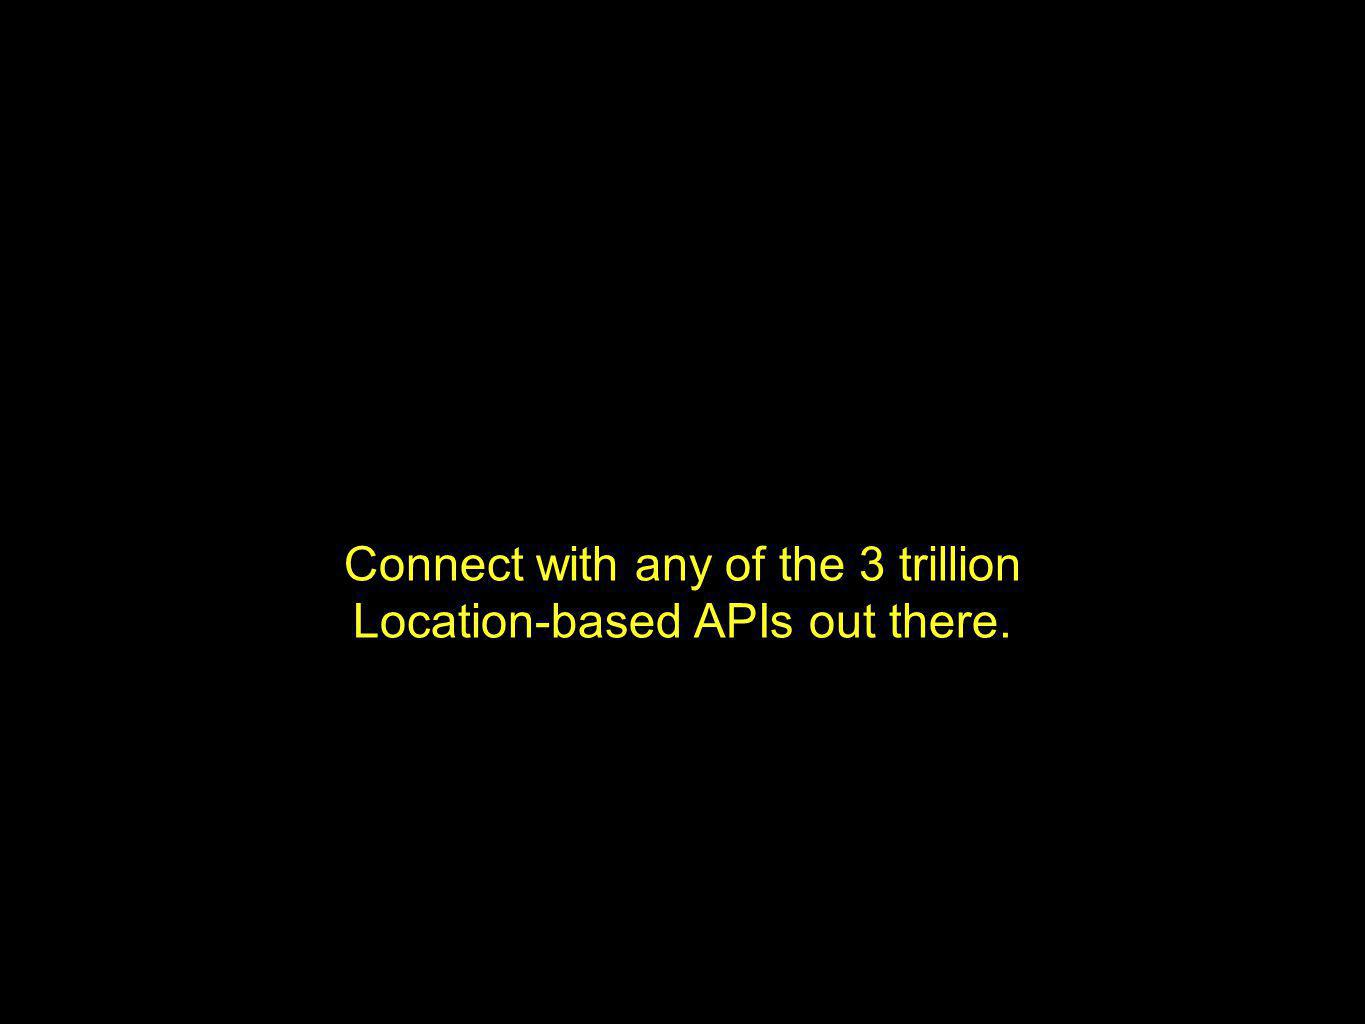 Connect with any of the 3 trillion Location-based APIs out there.